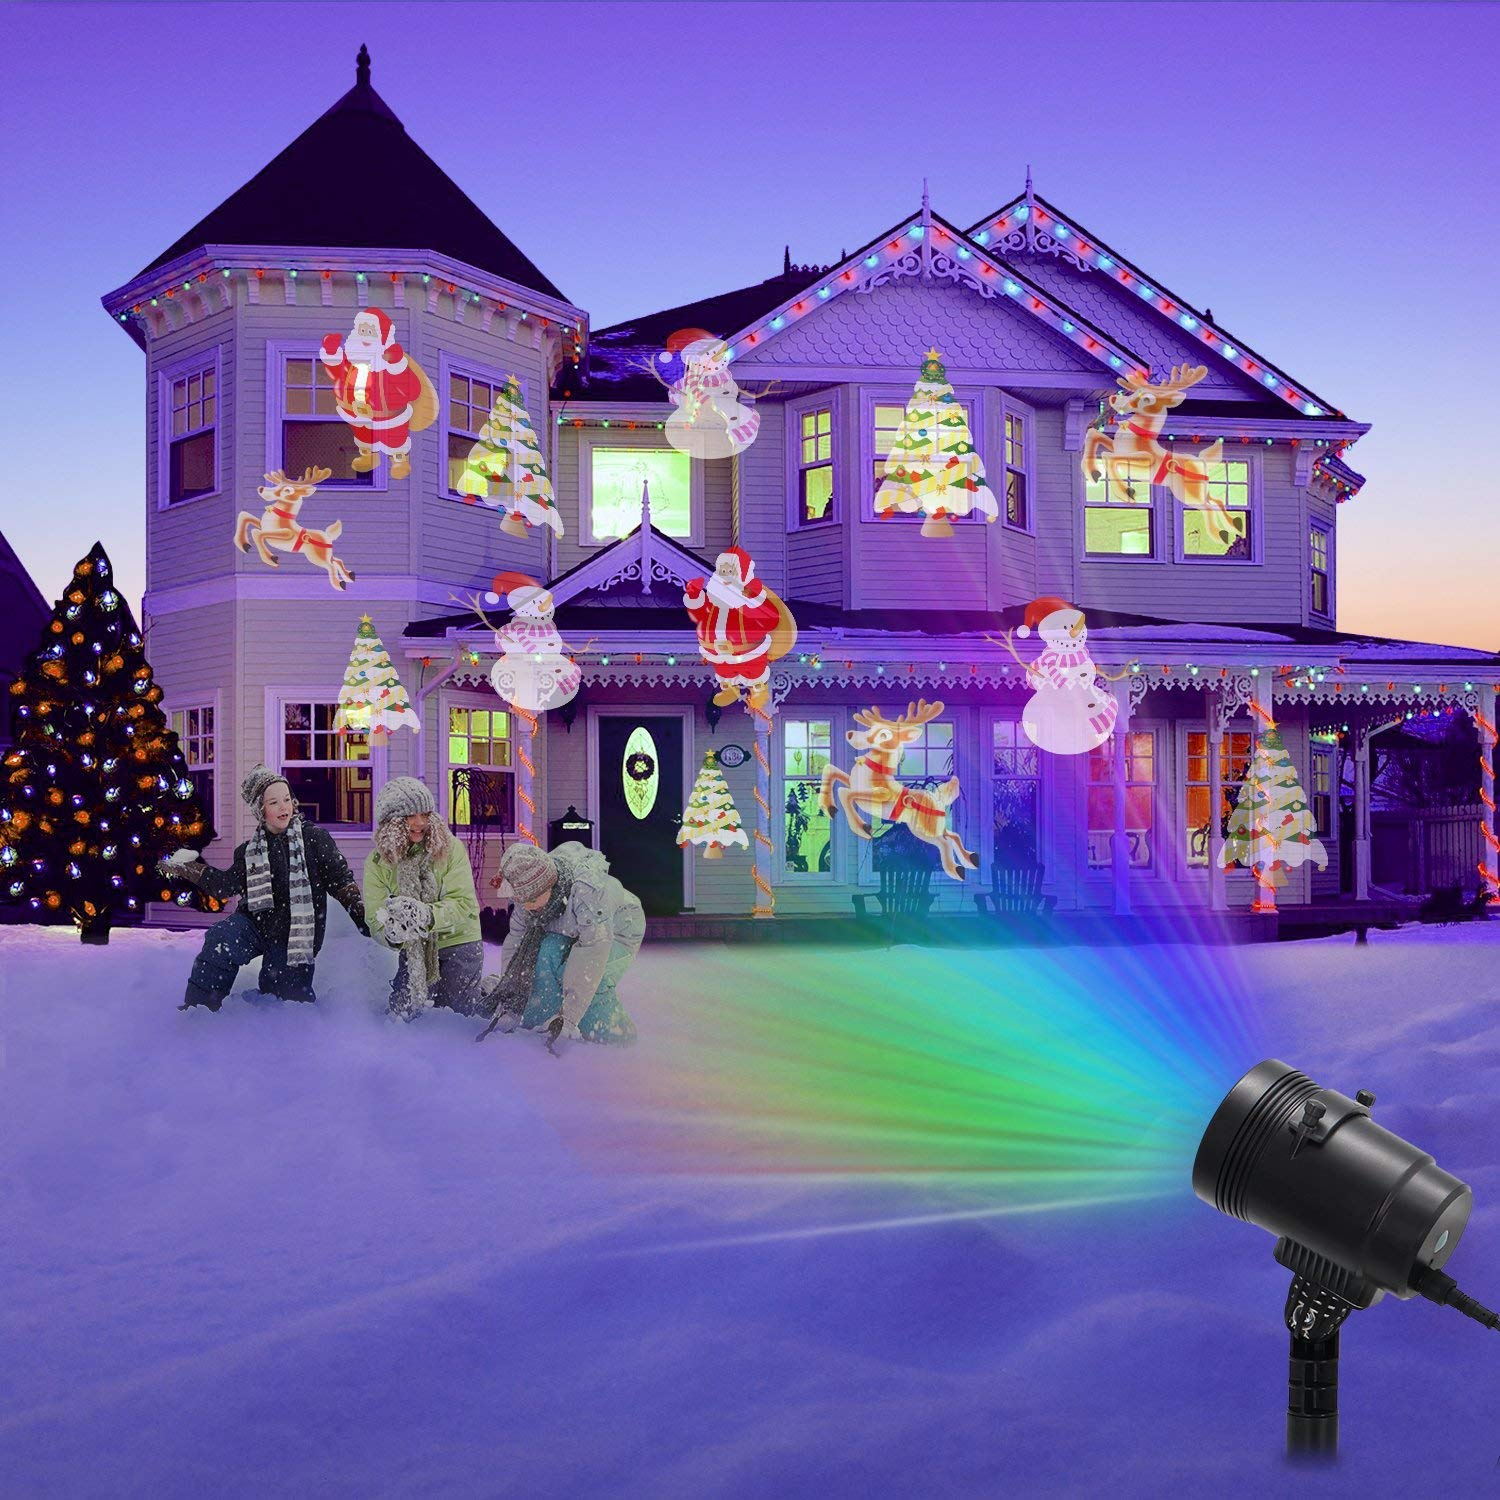 Christmas LED Projector Light, Outdoor Waterproof High Brightness Light Show with 32ft Cable & Remote Control for Christmas, Party and Holiday Decorations (16 Patterns) by Tunnkit (Image #4)